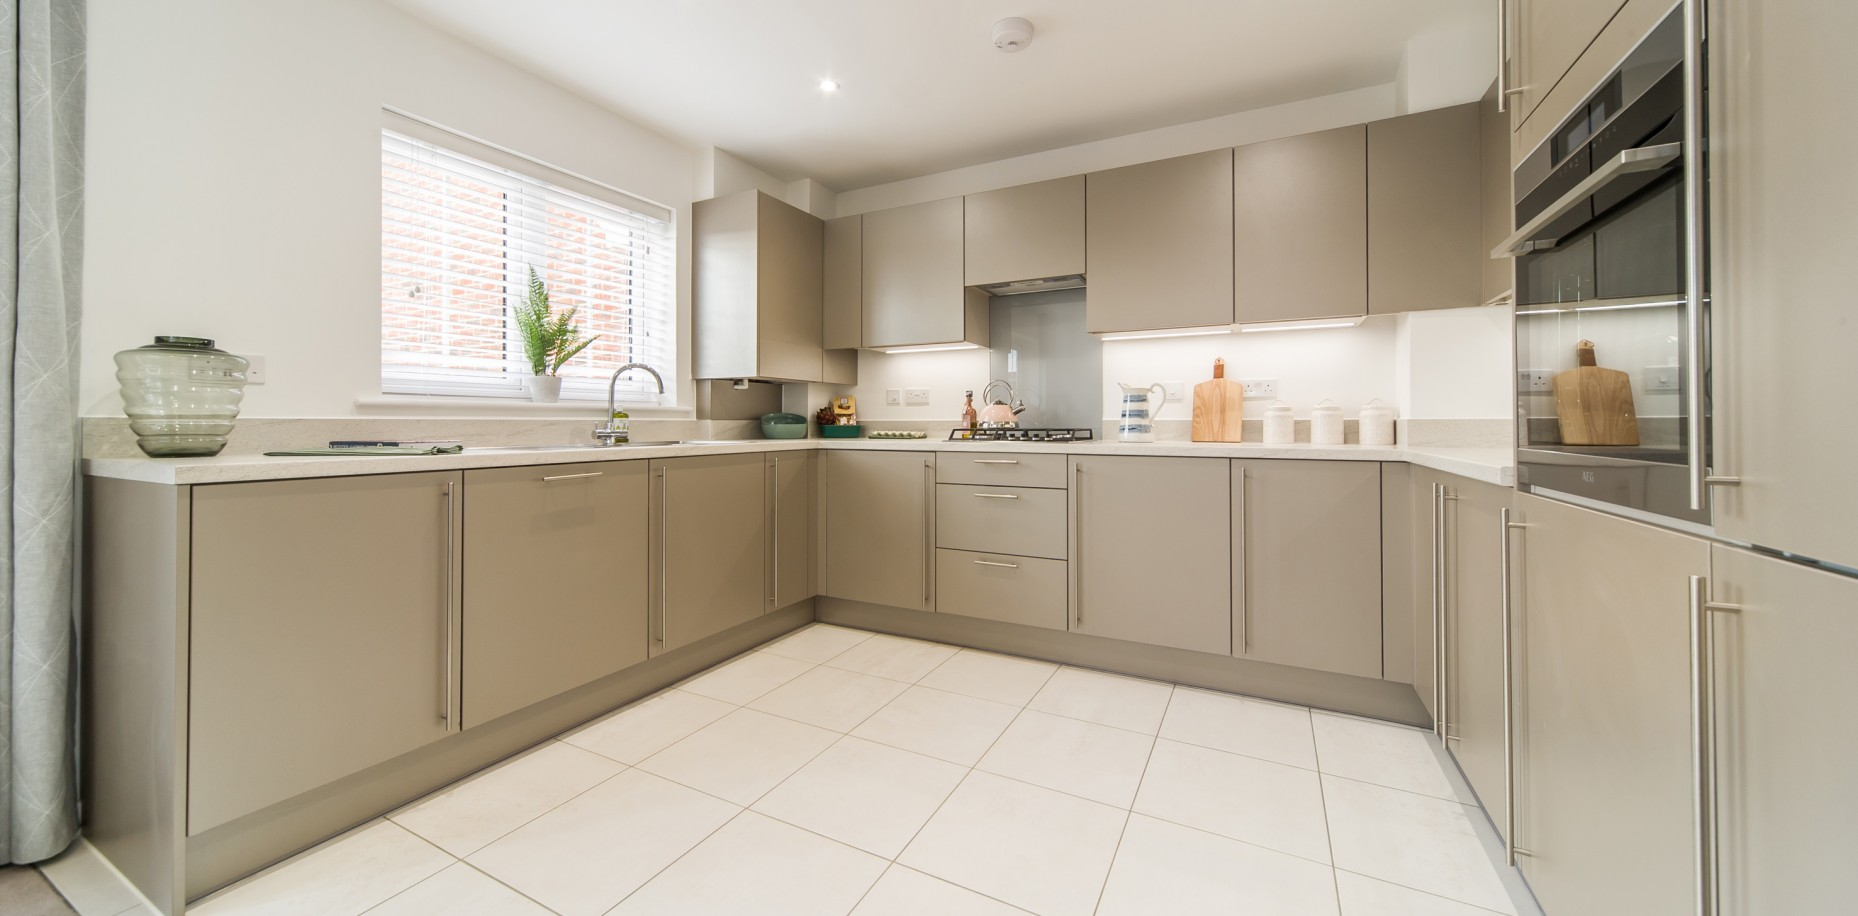 What makes Westerhill Homes different?